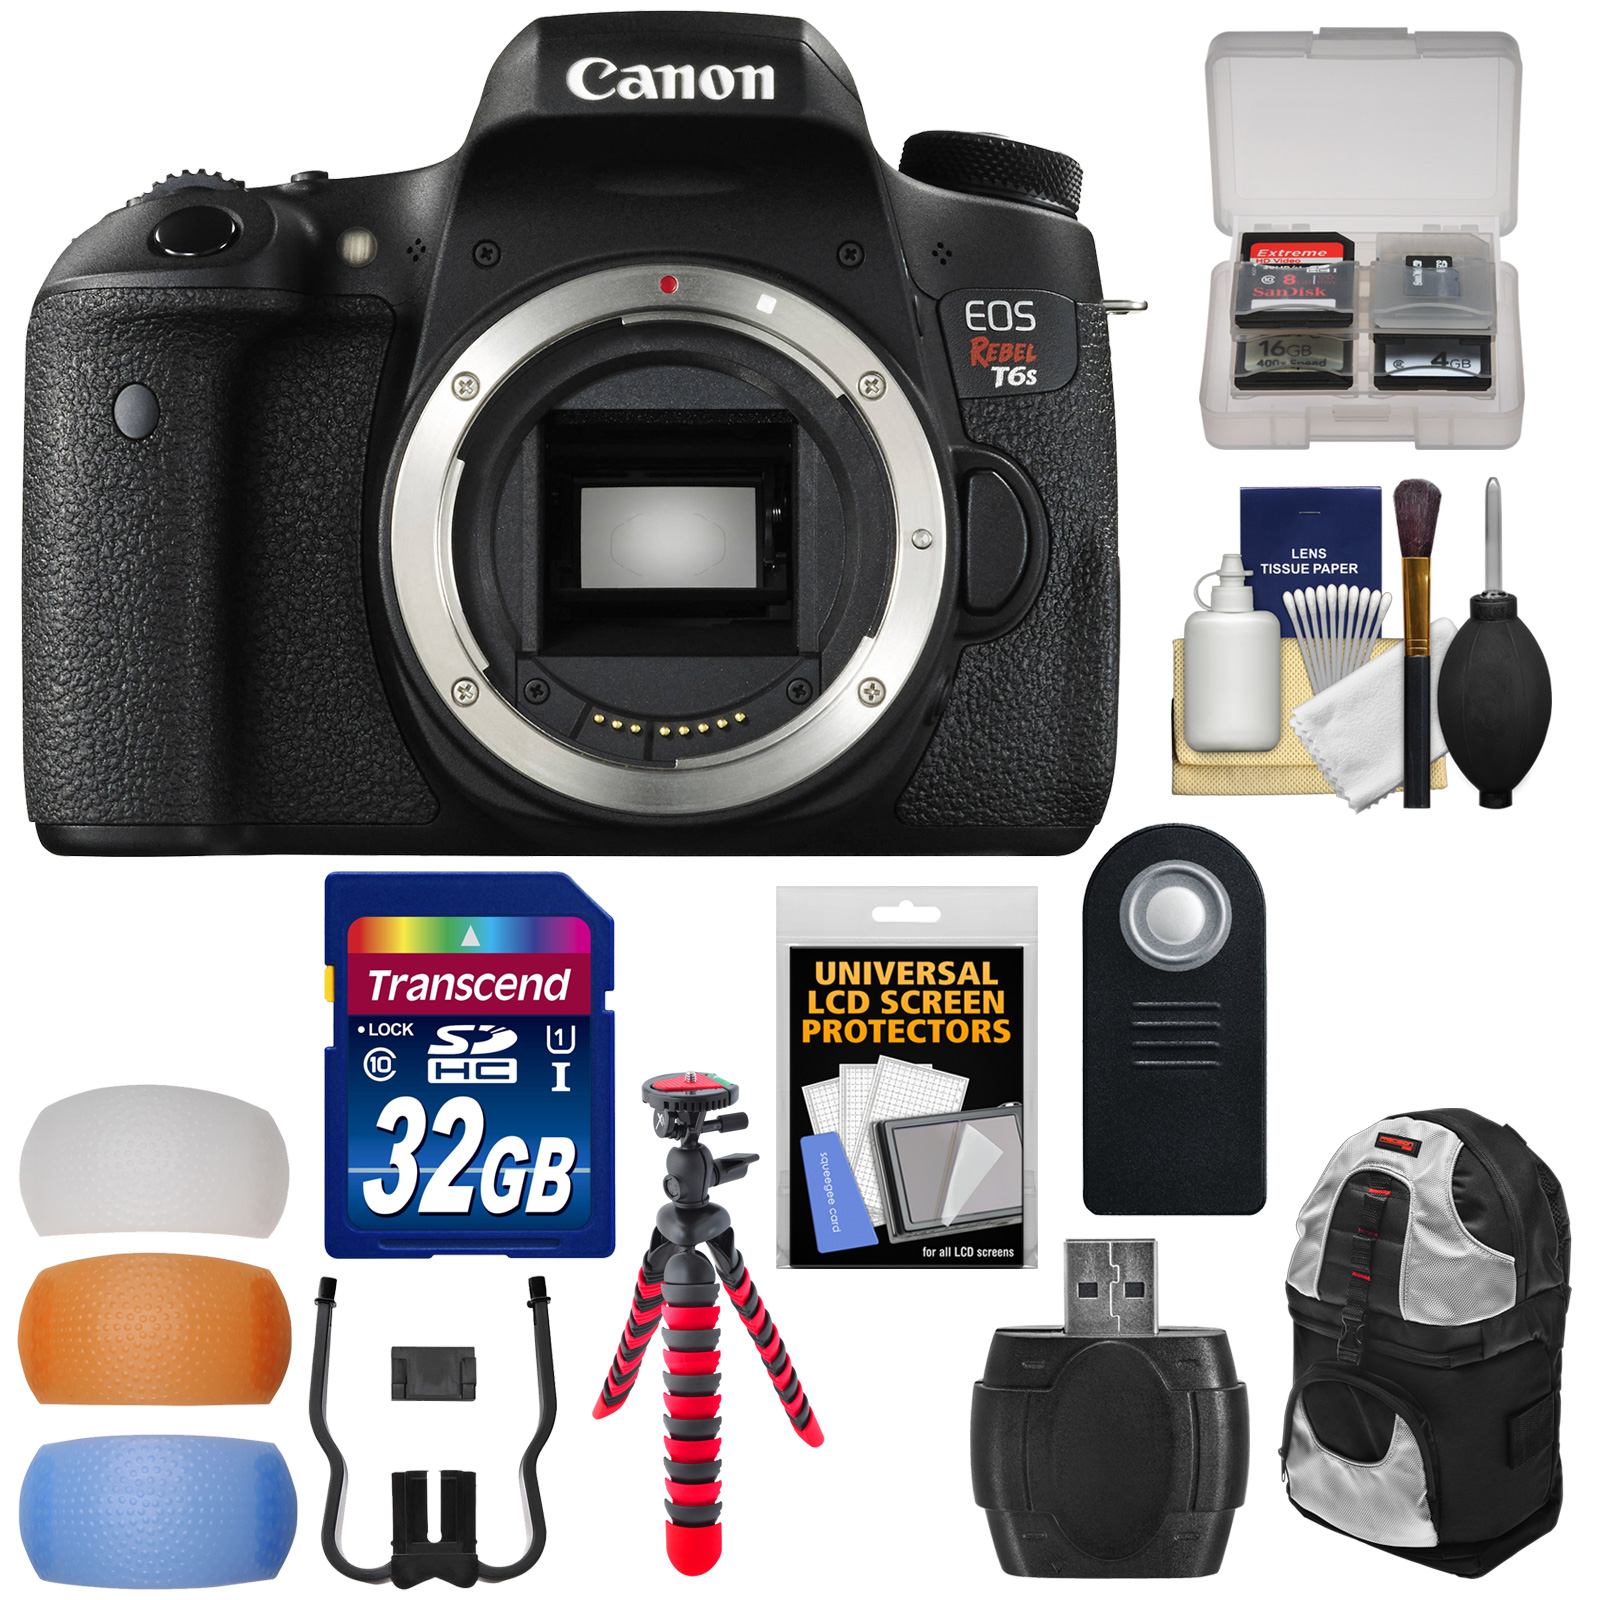 Canon EOS Rebel T6s Wi-Fi Digital SLR Camera Body with 32GB Card + Backpack + Tripod + Diffusers + Remote + Kit